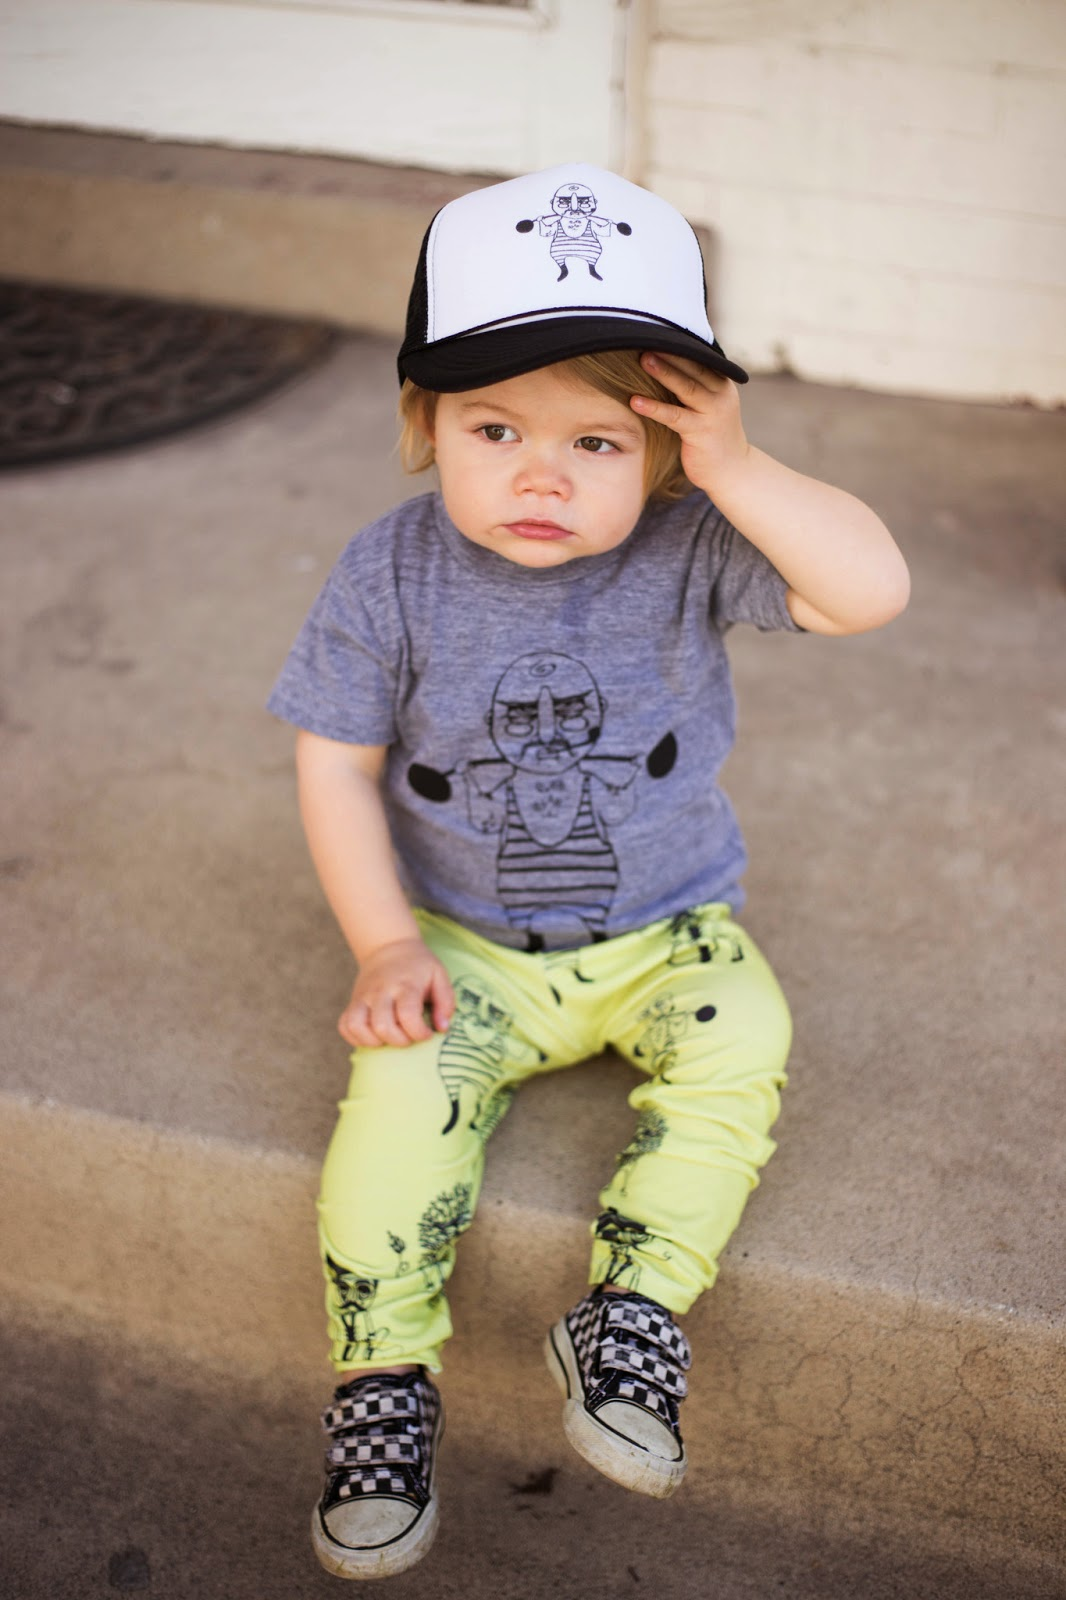 Coolest kids pants spring 2014 - Salt City Emporium